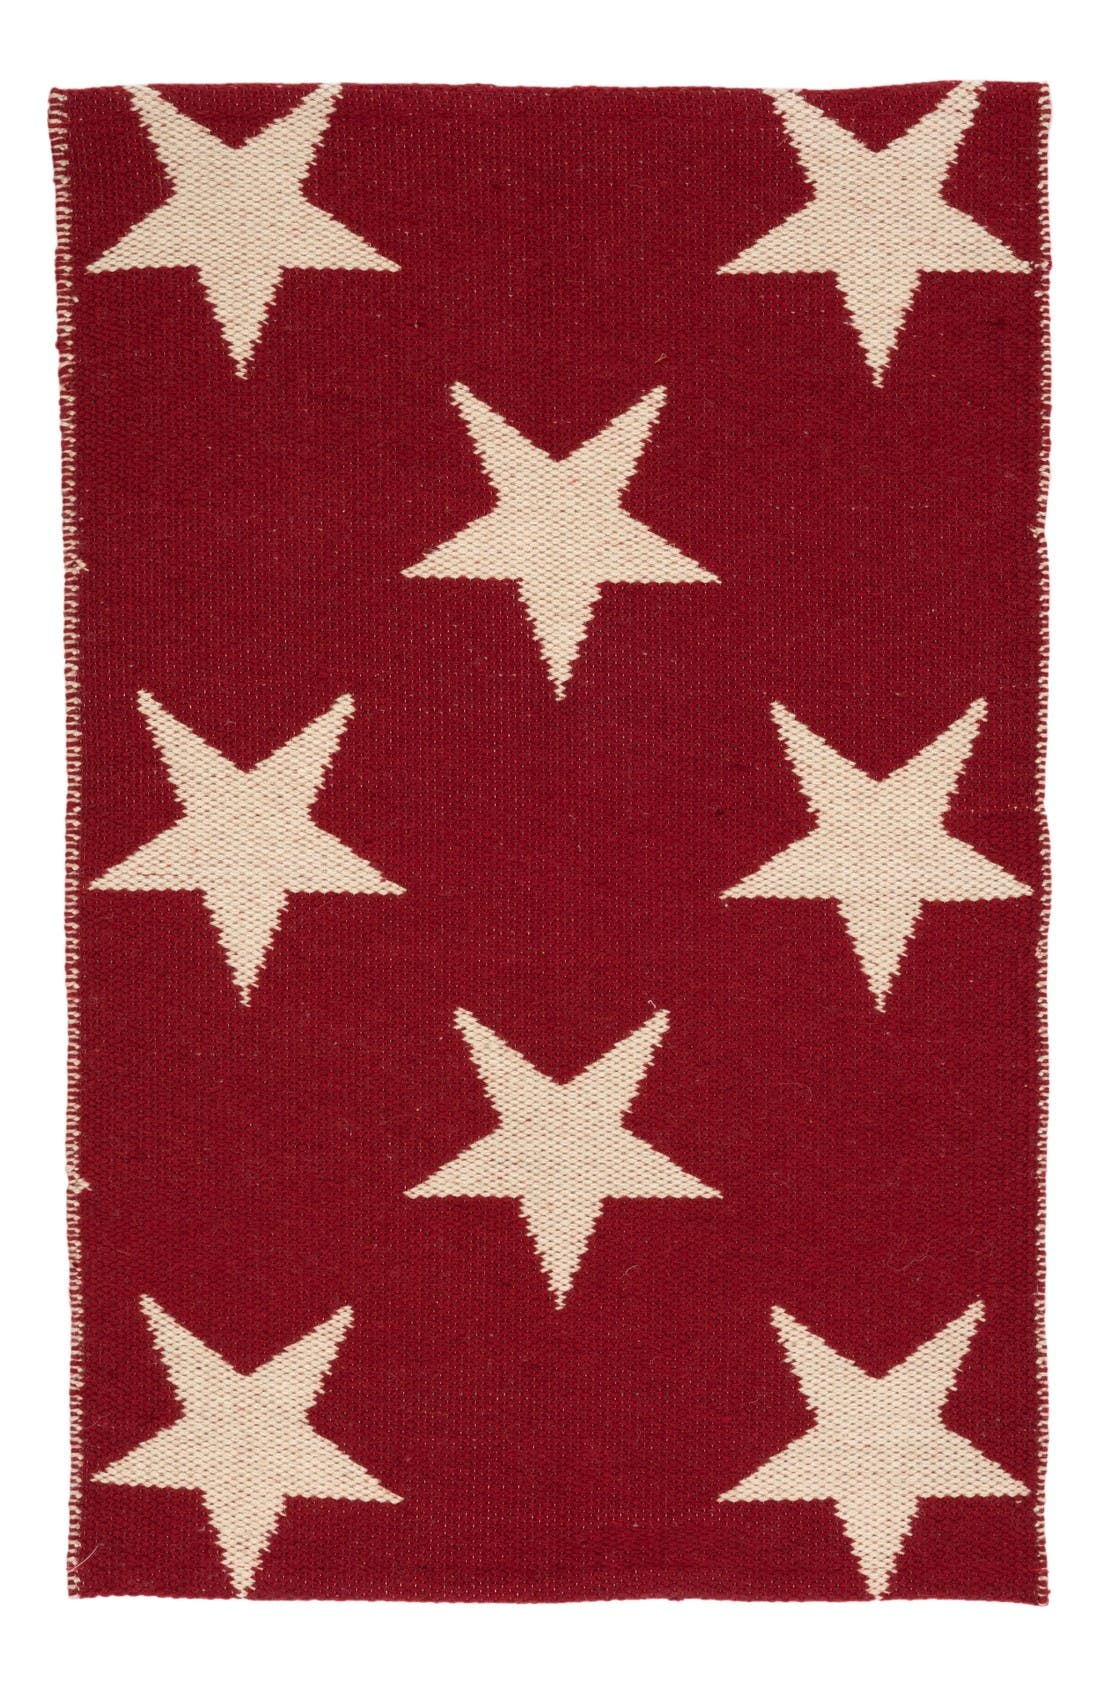 Star Indoor/Outdoor Rug,                             Main thumbnail 1, color,                             Red